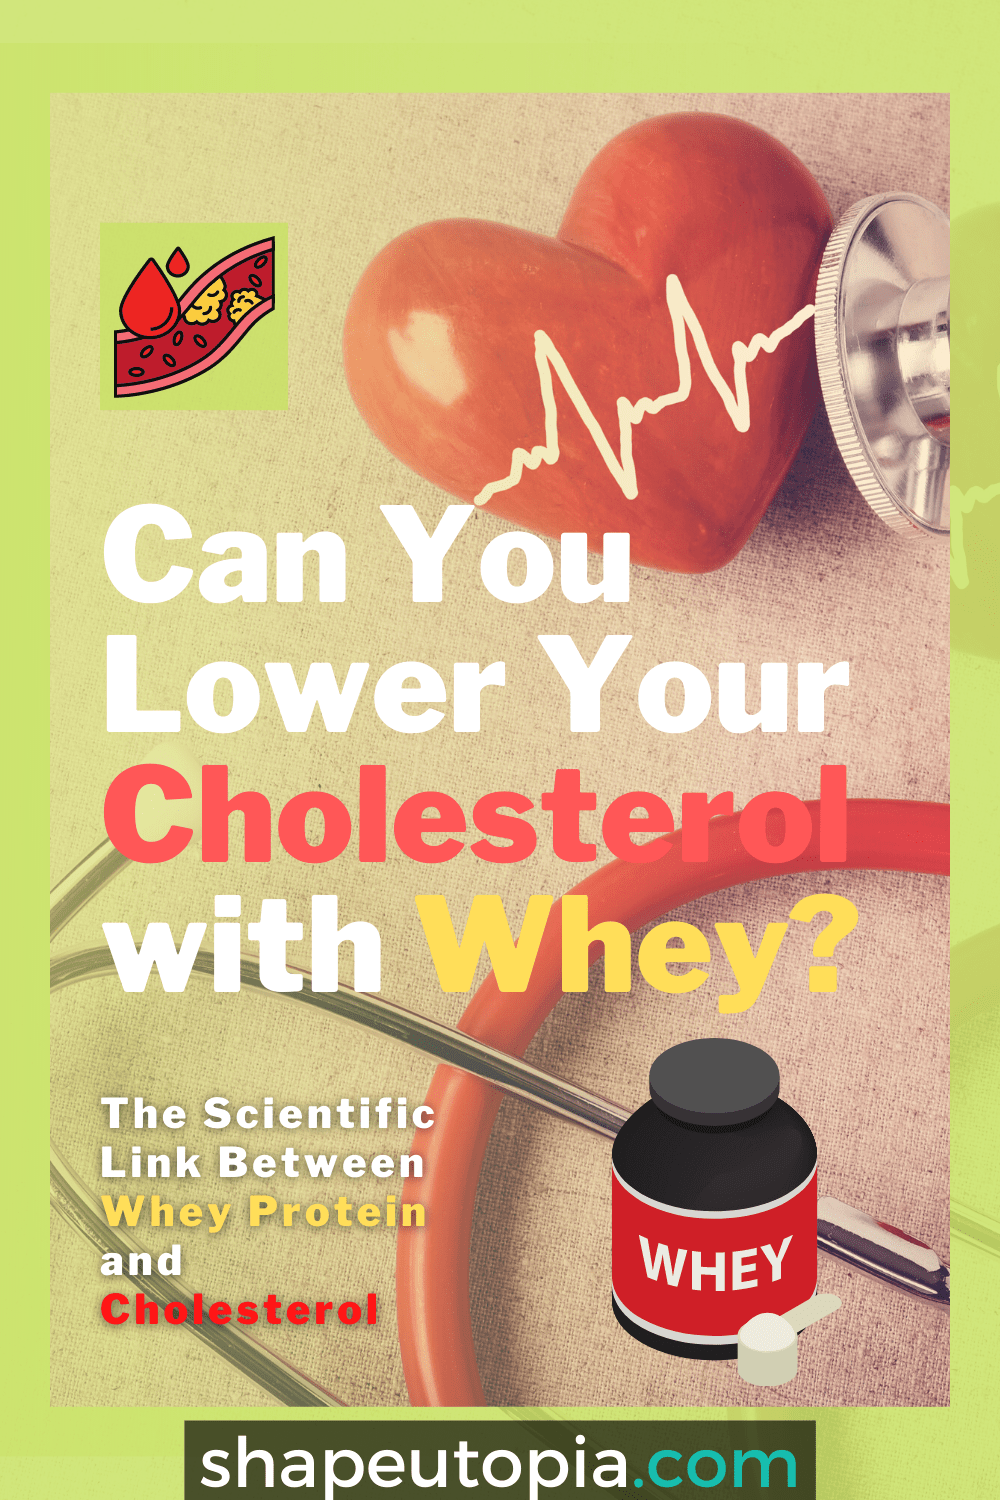 The Scientific Link Between Whey Protein and Cholesterol – Can You Lower Your Cholesterol with Whey